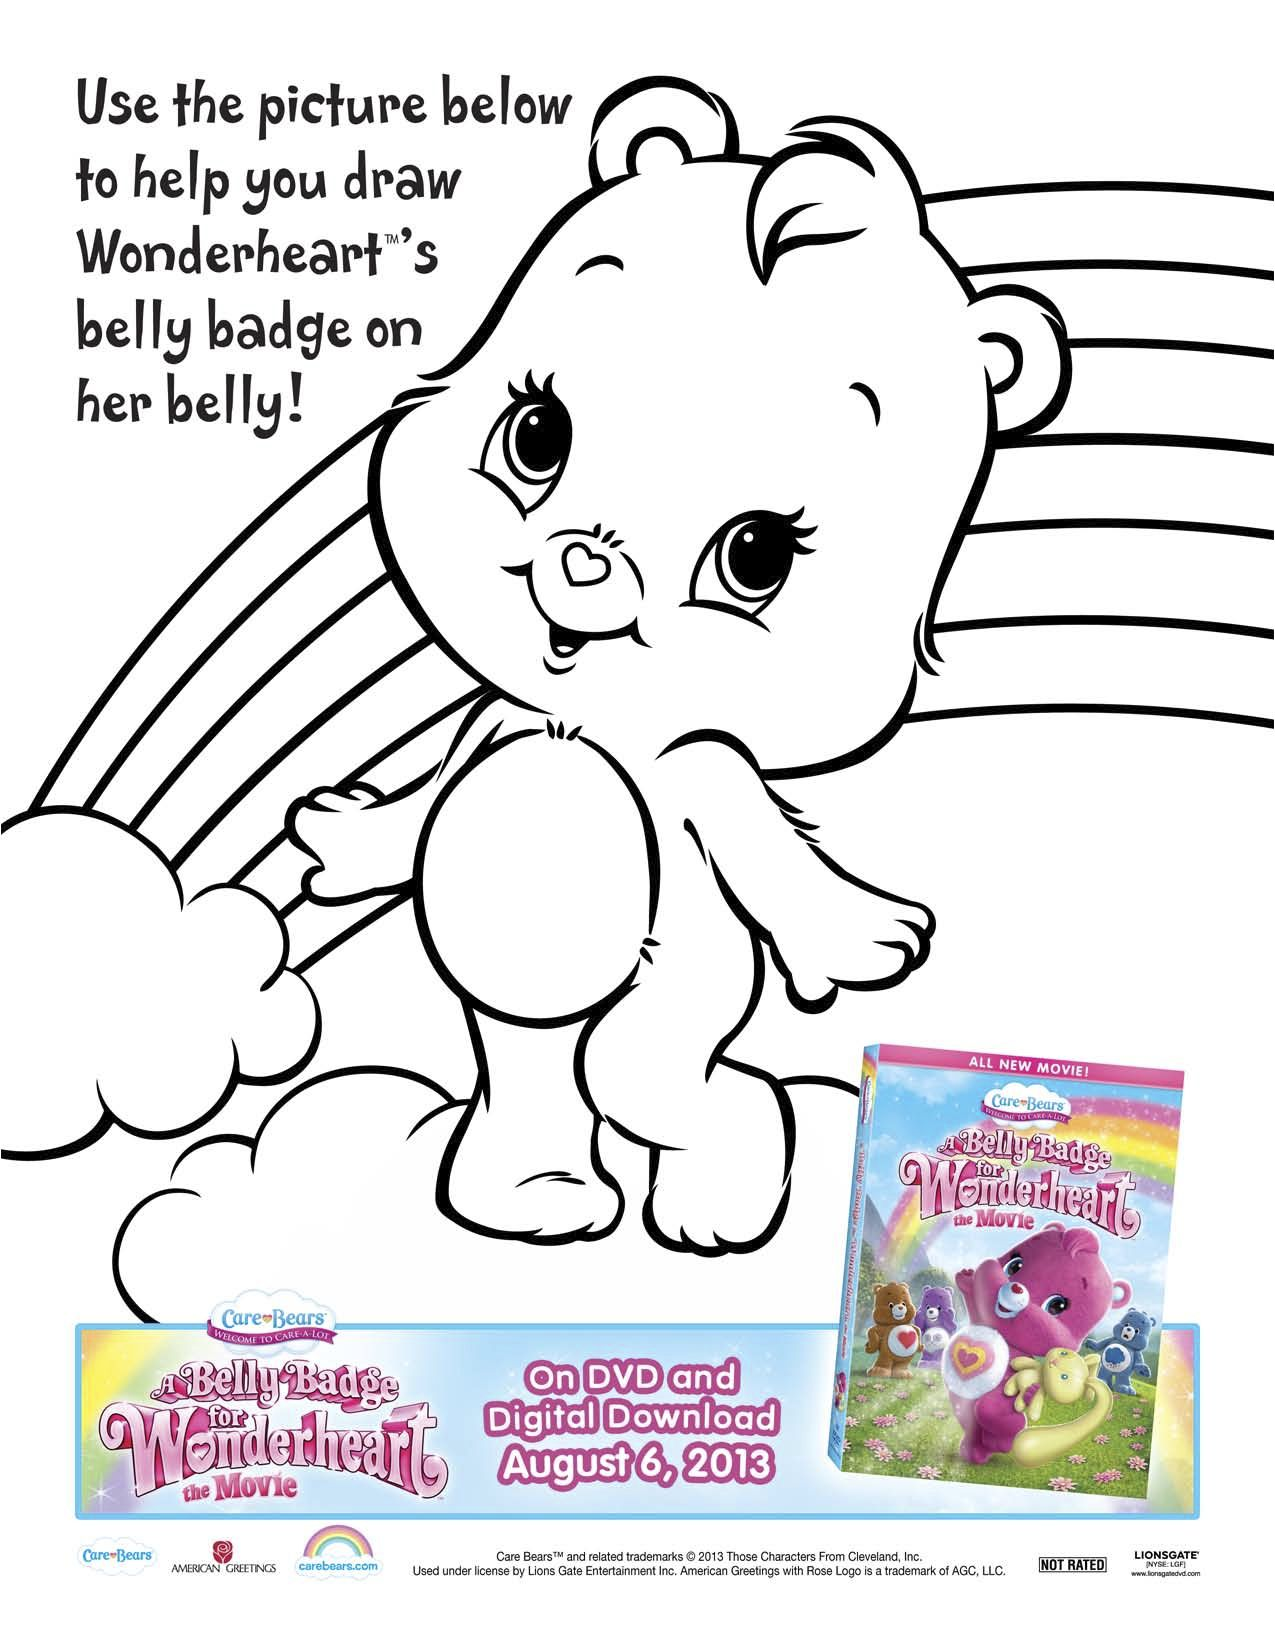 Care Bears A Belly Badge For Wonderheart Printable Coloring Sheet